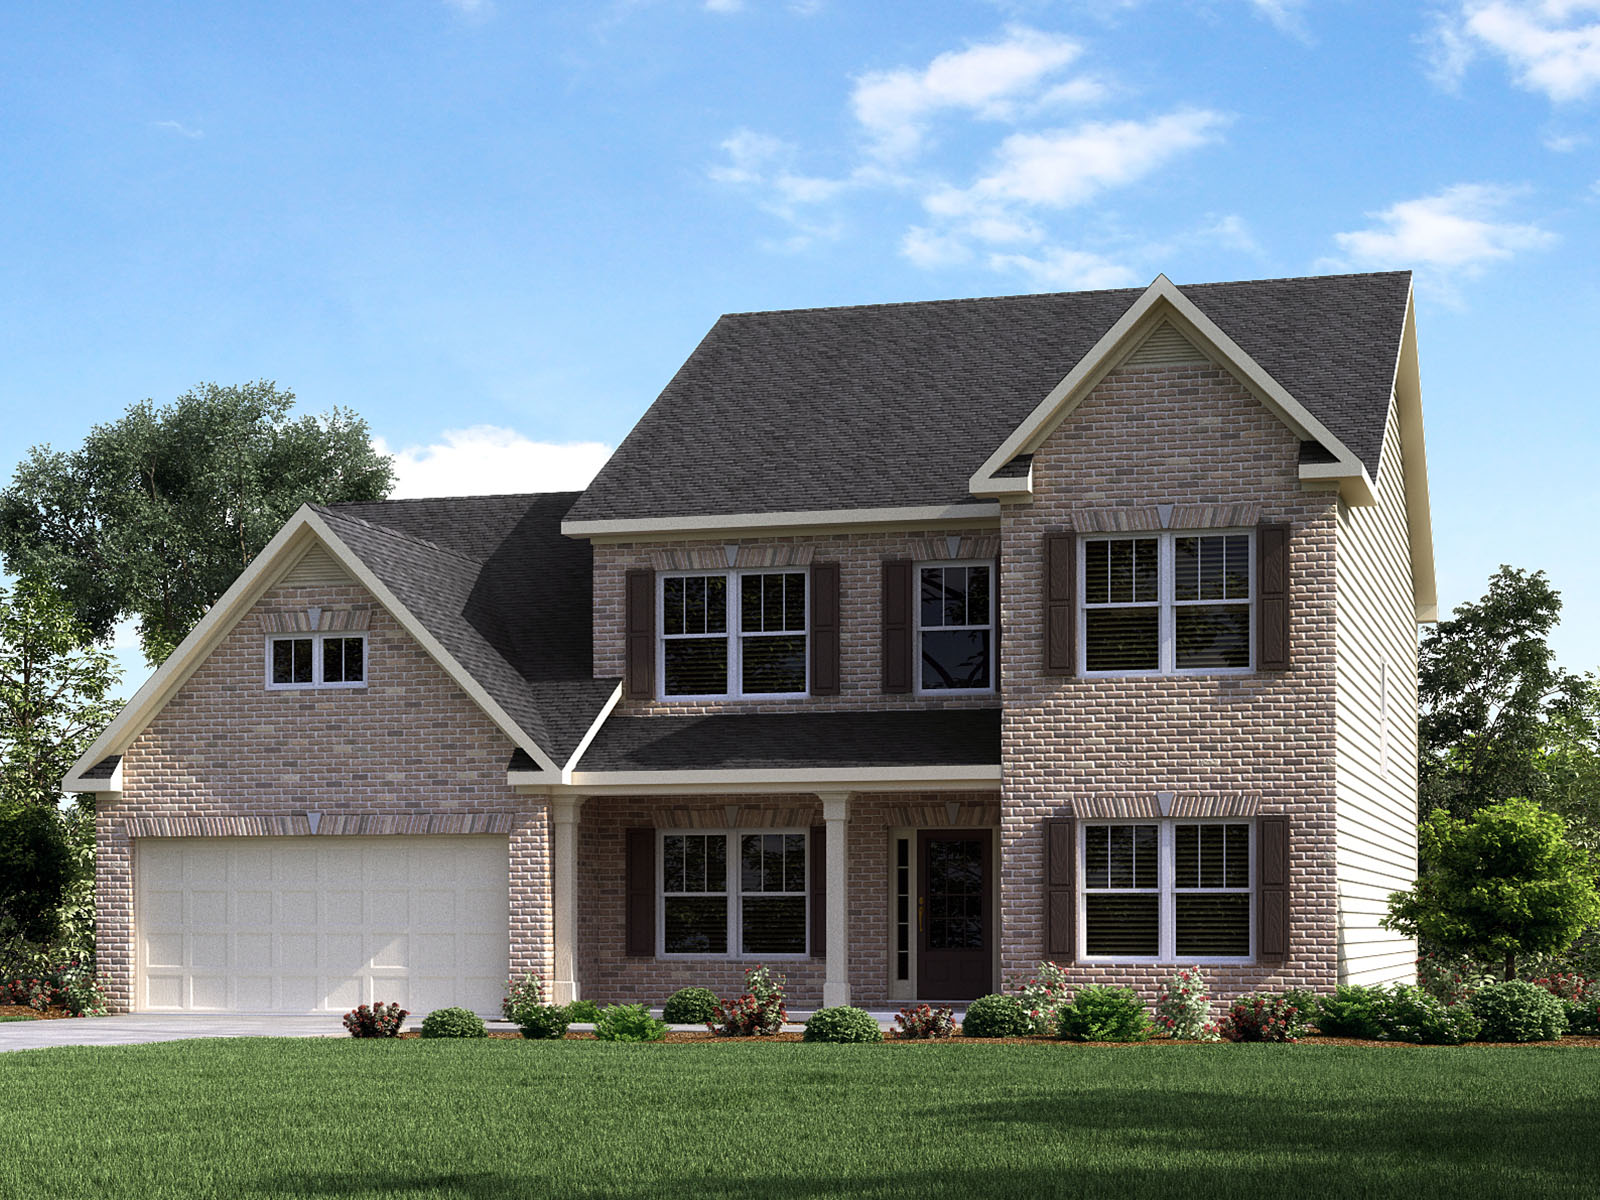 Stonewood Manor by Meritage Homes | New Homes for sale in ... on legendary communities floor plans, ryan floor plans, lennar floor plans,